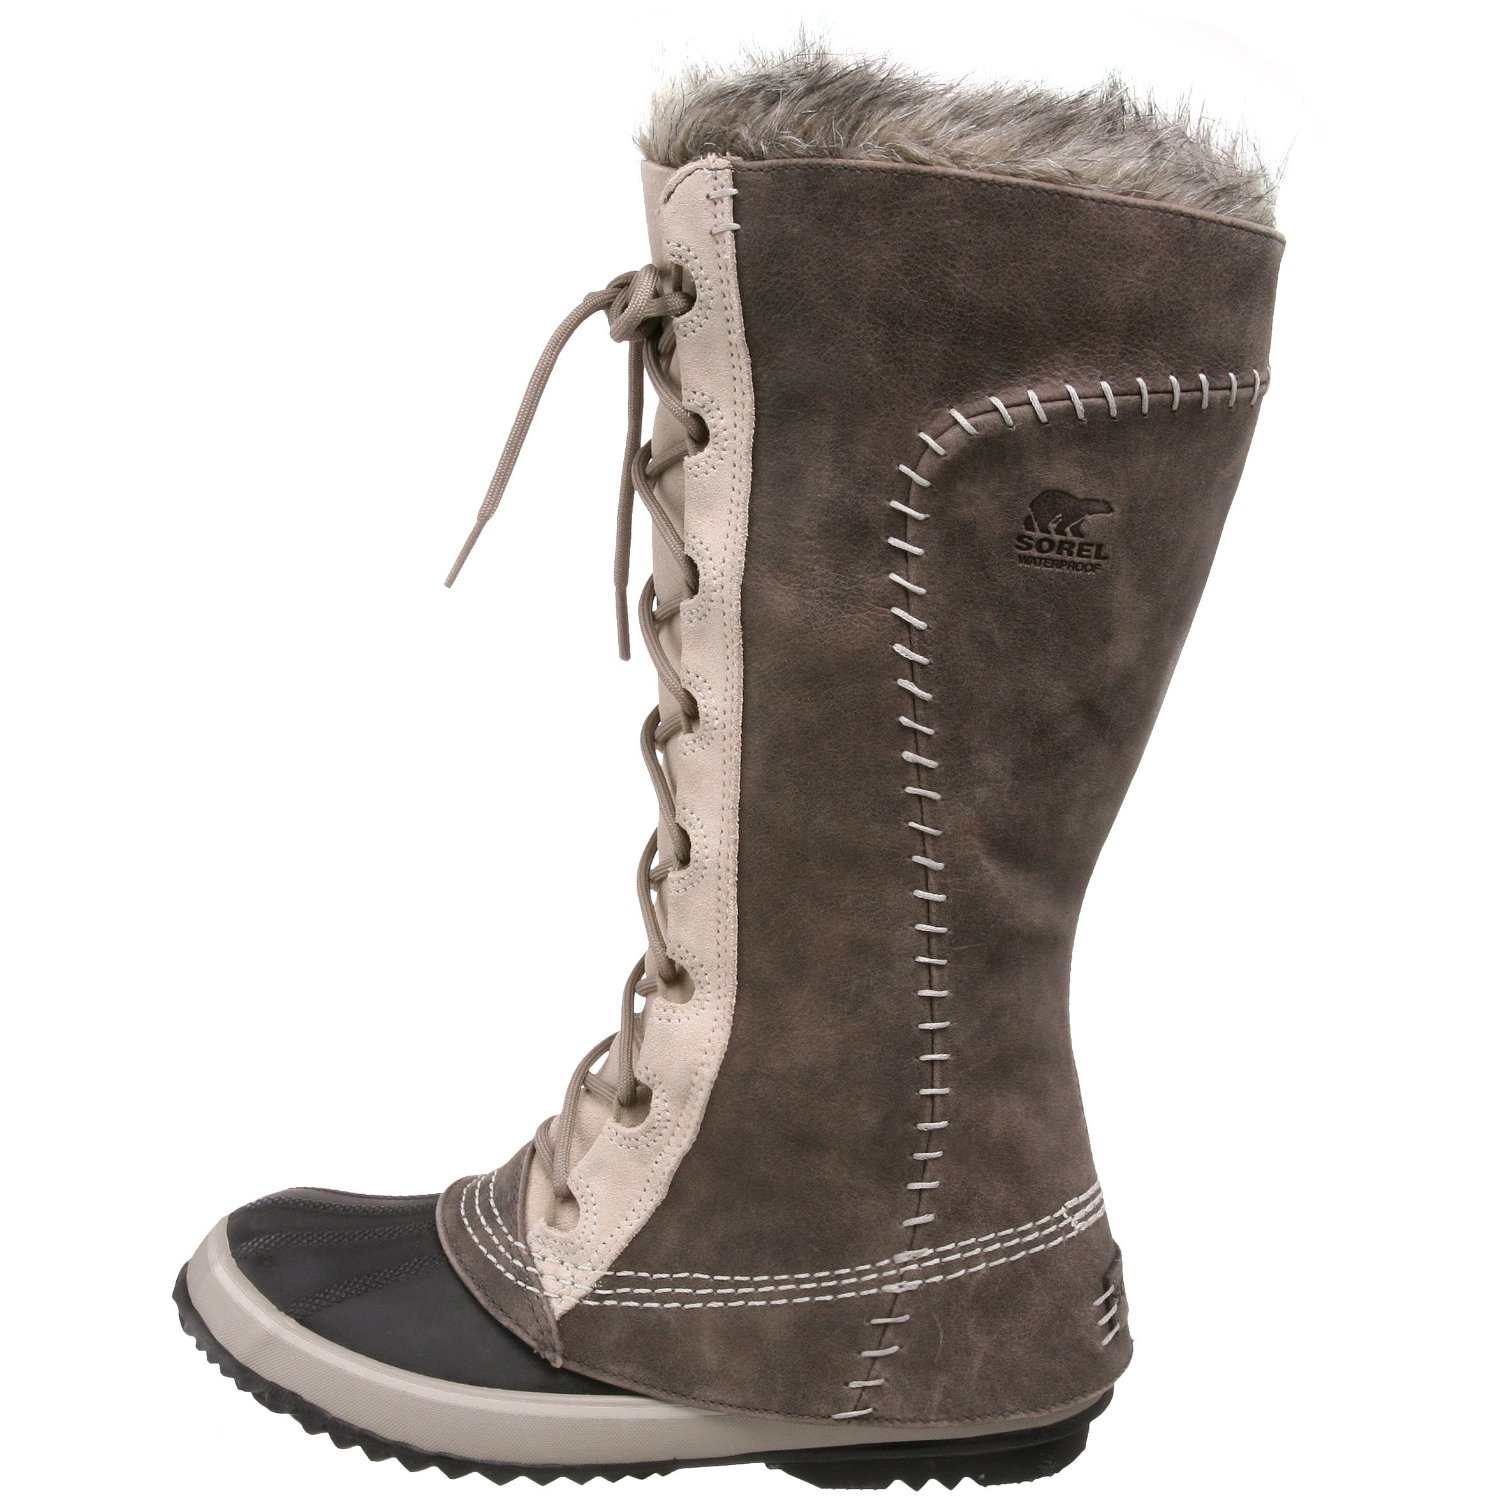 Sorel Women's Cate The Great Snow Boots | Planetary Skin Institute